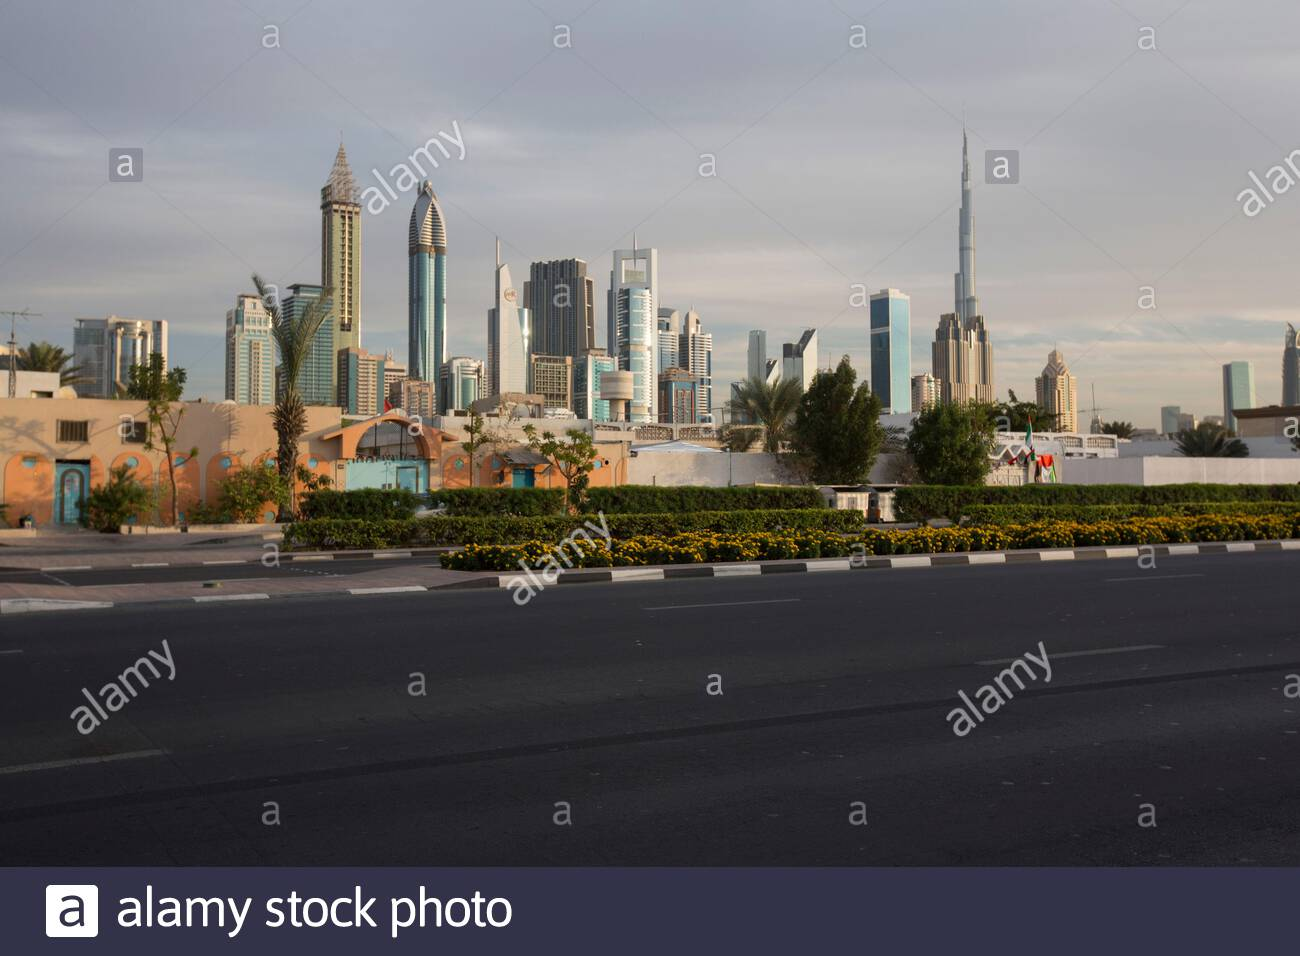 United Arab Emirates - Dubai - A view over Sheikh Zayed Road from Satwa, an old neighborhood of Dubai. Sheikh Zayed Road is the main artery of the city.The highway runs parallel to the coastline from Trade Centre Roundabout to the border with the emirate of Abu Dhabi, 55 kilometres (34 mi) away in the area of Jebel Ali.(LF)The Sheikh Zayed Road is home to most of Dubai's skyscrapers, including the Emirates Towers. The highway also connects other new developments such as the Palm Jumeirah and Dubai Marina. Stock Photo